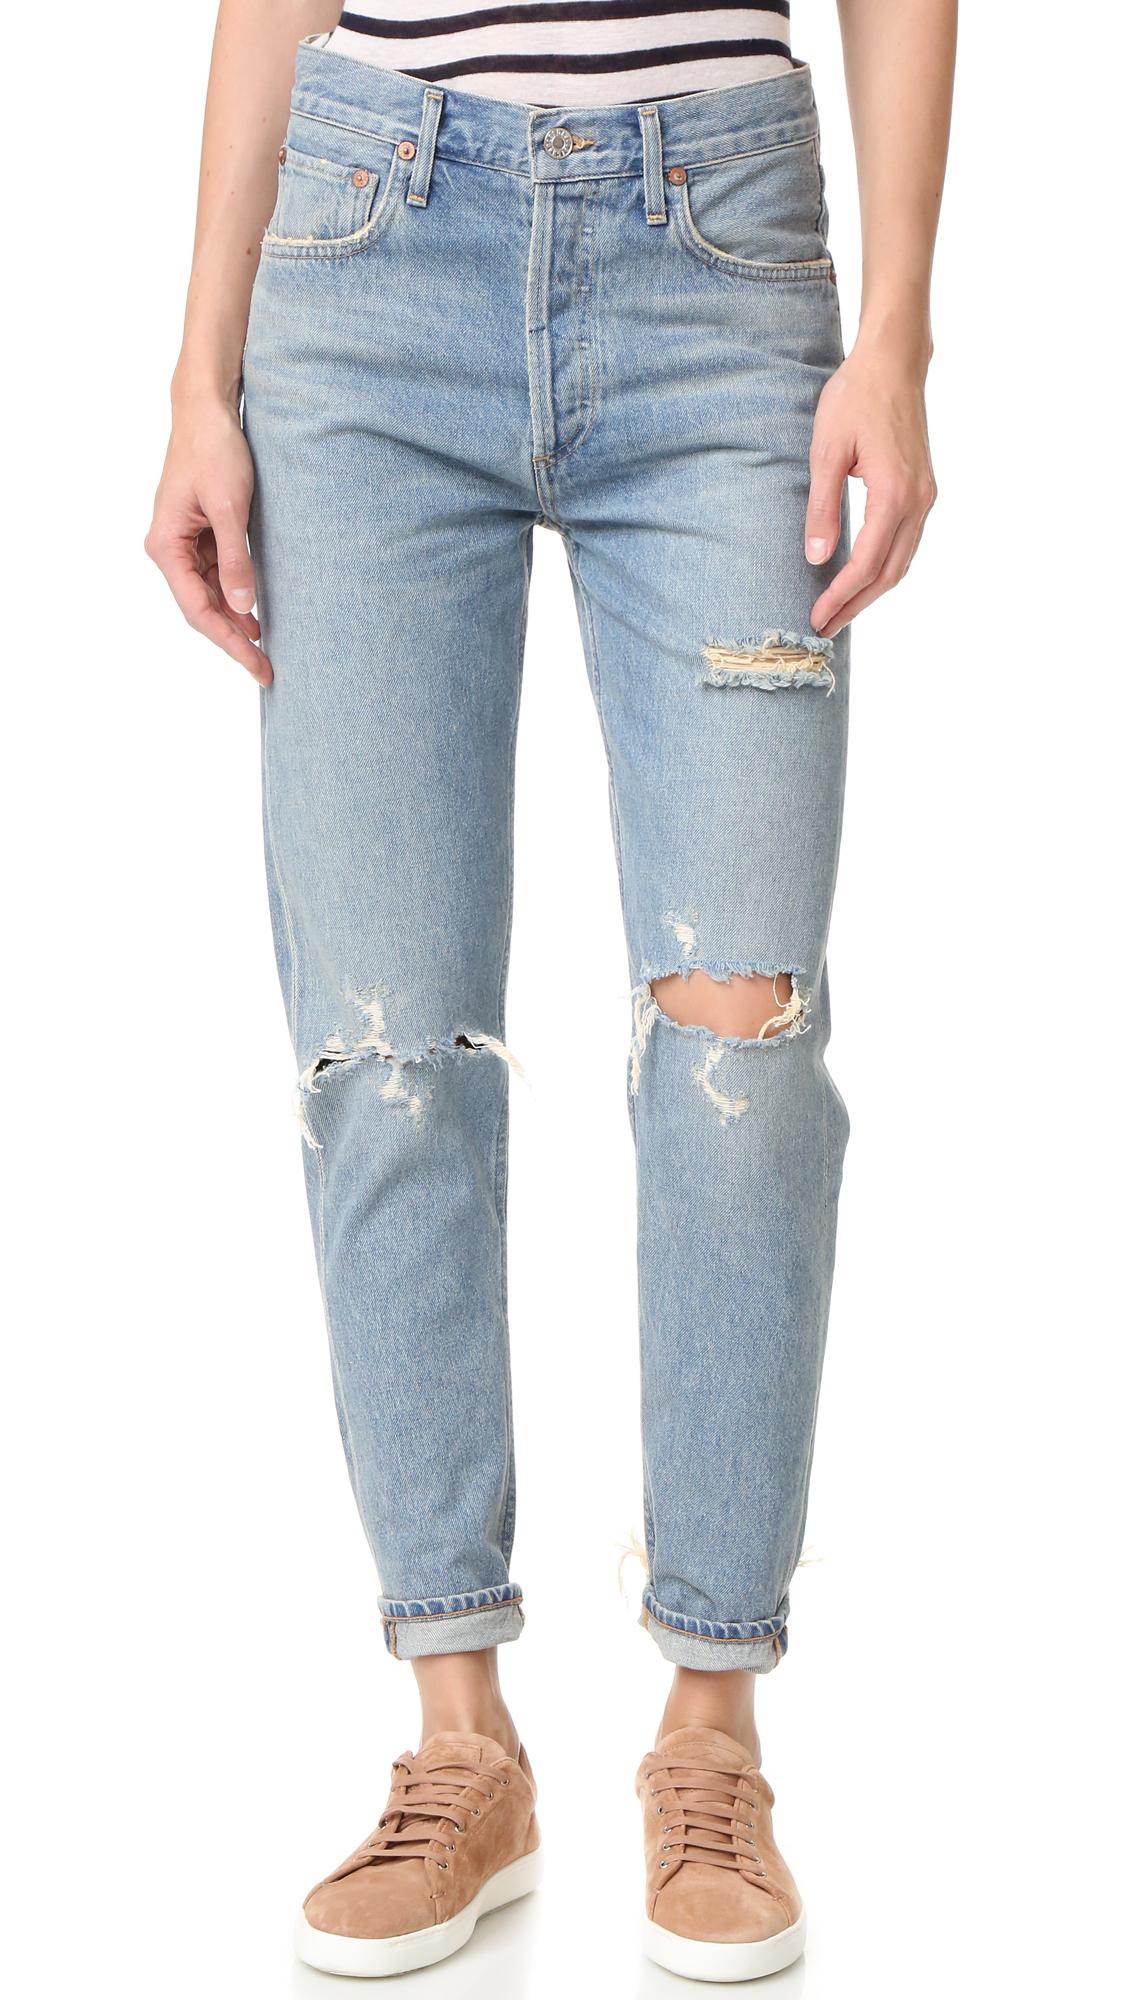 Distressed / Destroyed / Ripped Jeans